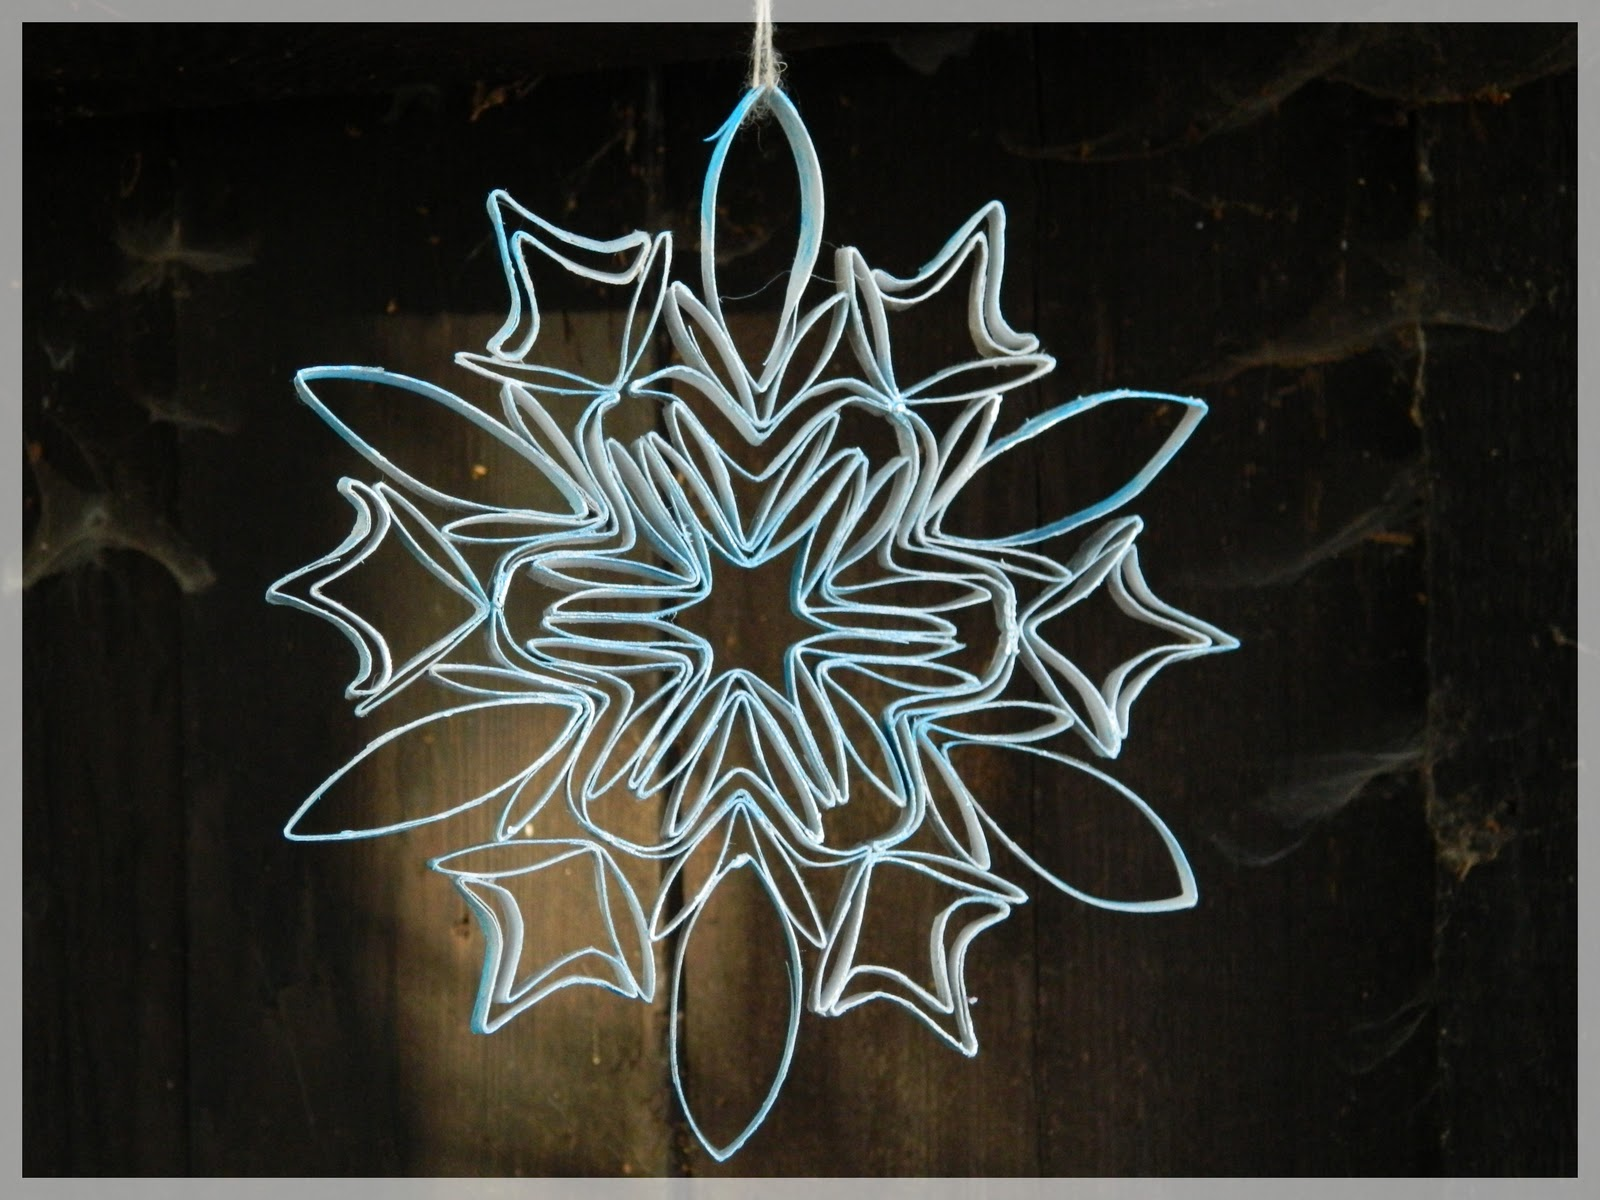 1000 images about christmas snowflakes on pinterest diy for Snowflake out of toilet paper rolls